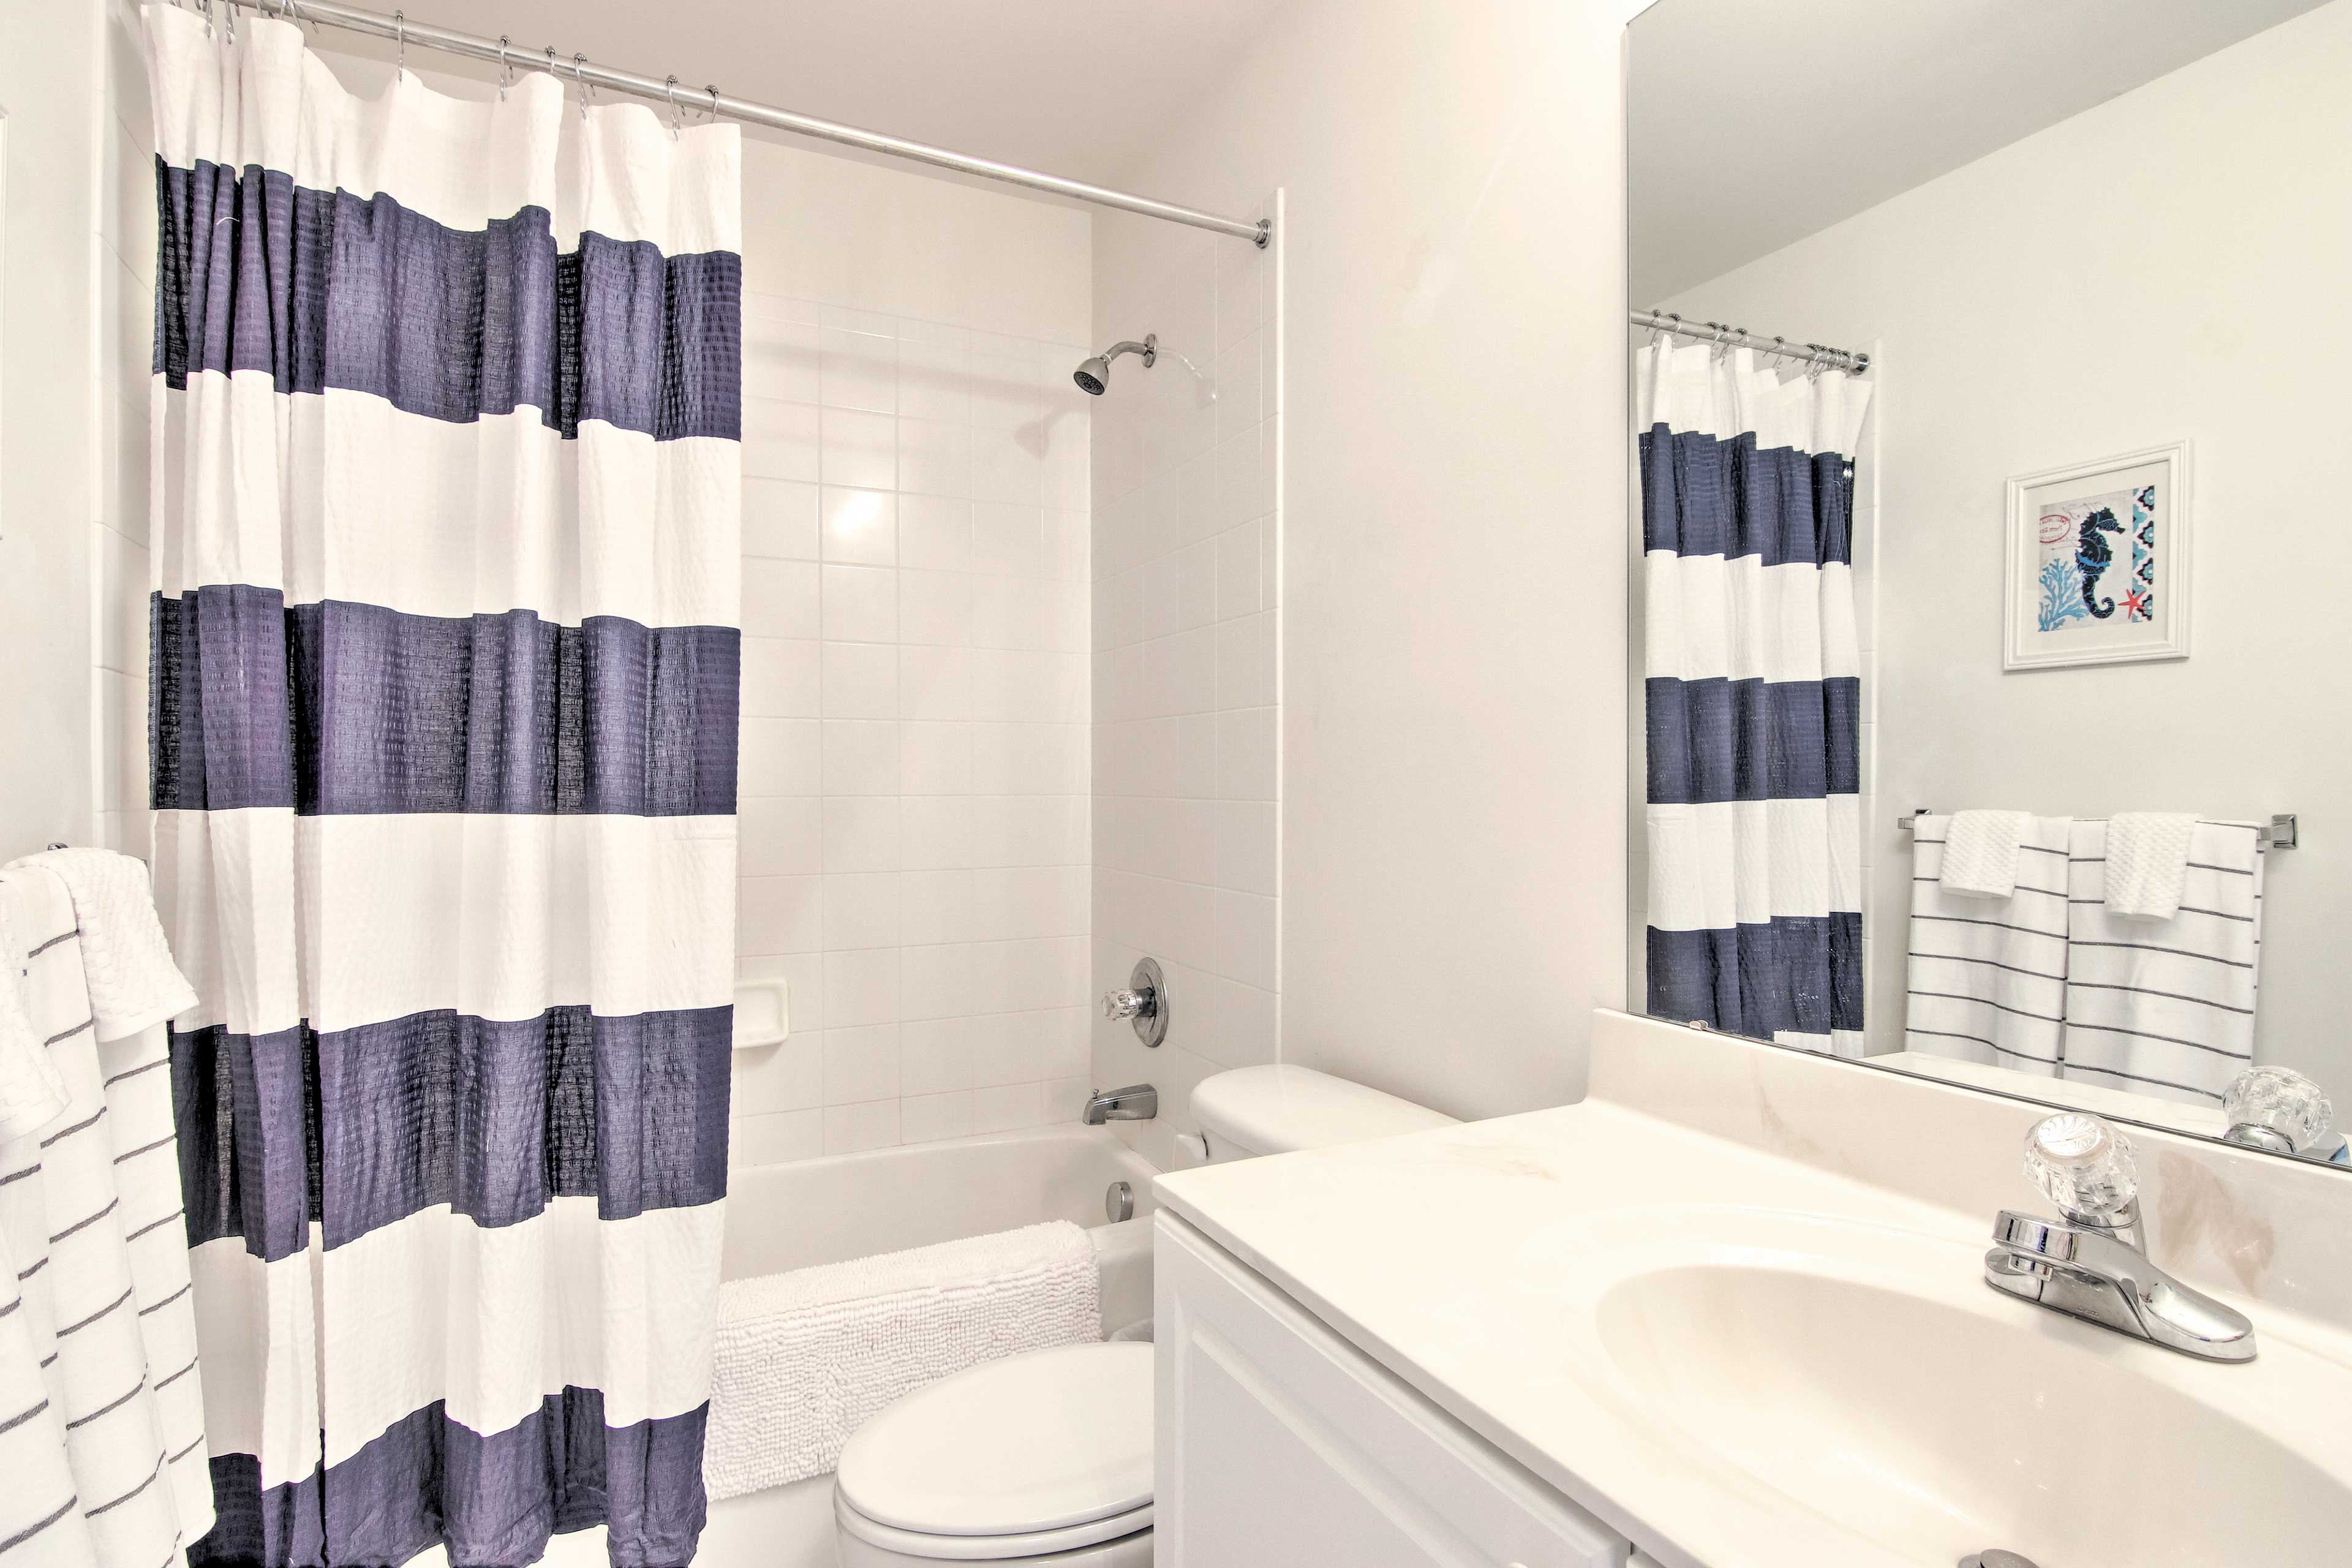 Both of the full bathrooms are stocked with fresh towels.